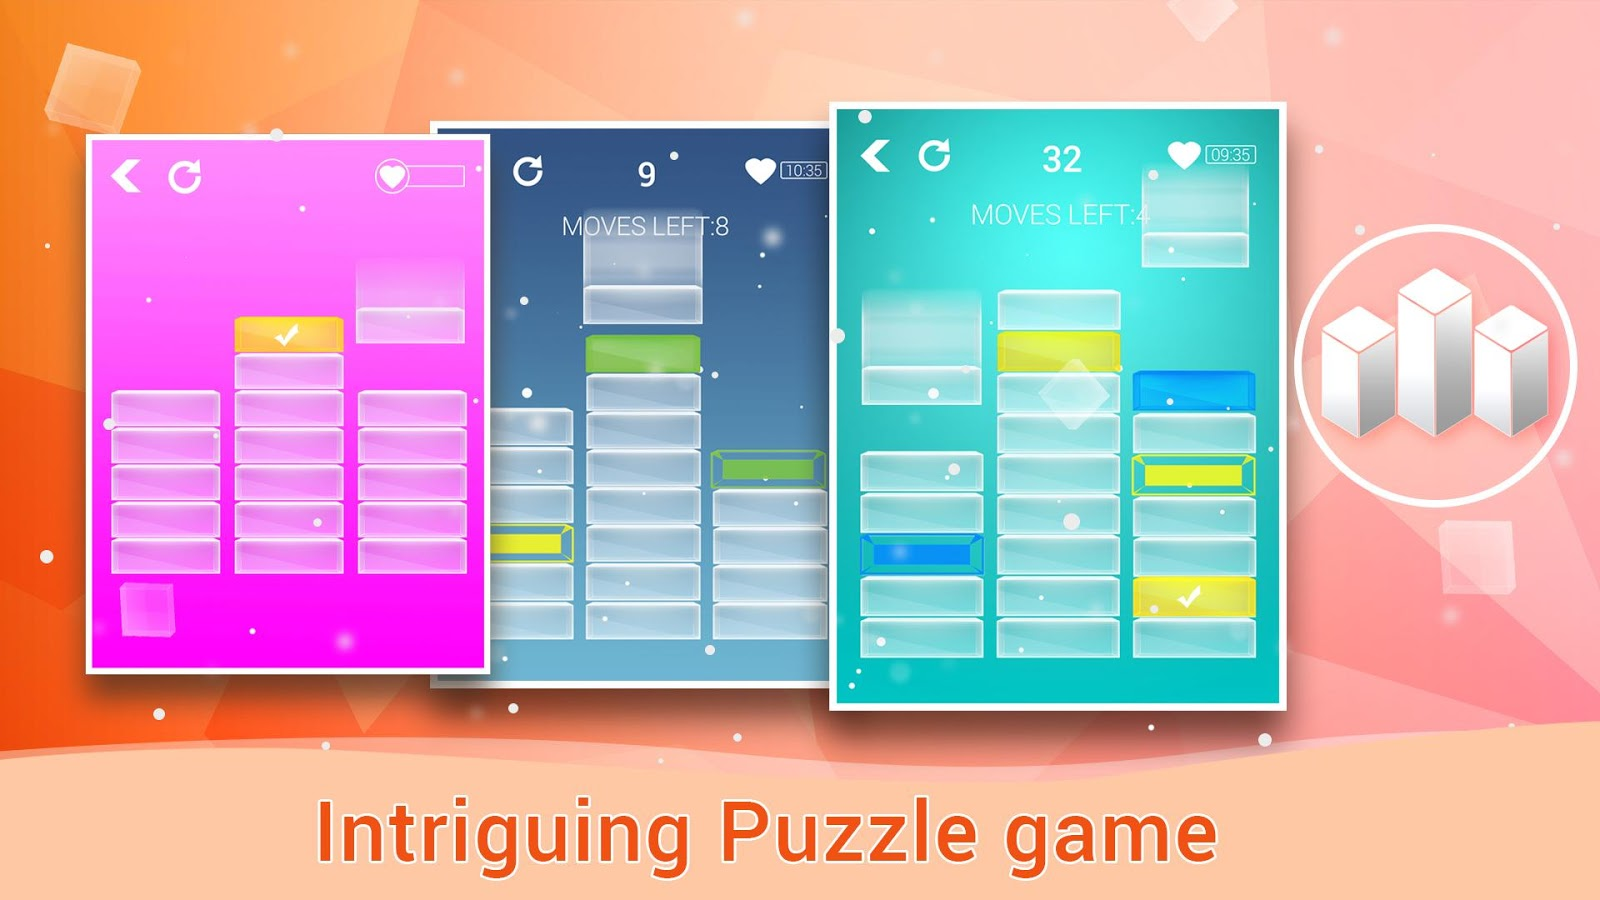 Three Towers: The Puzzle Game